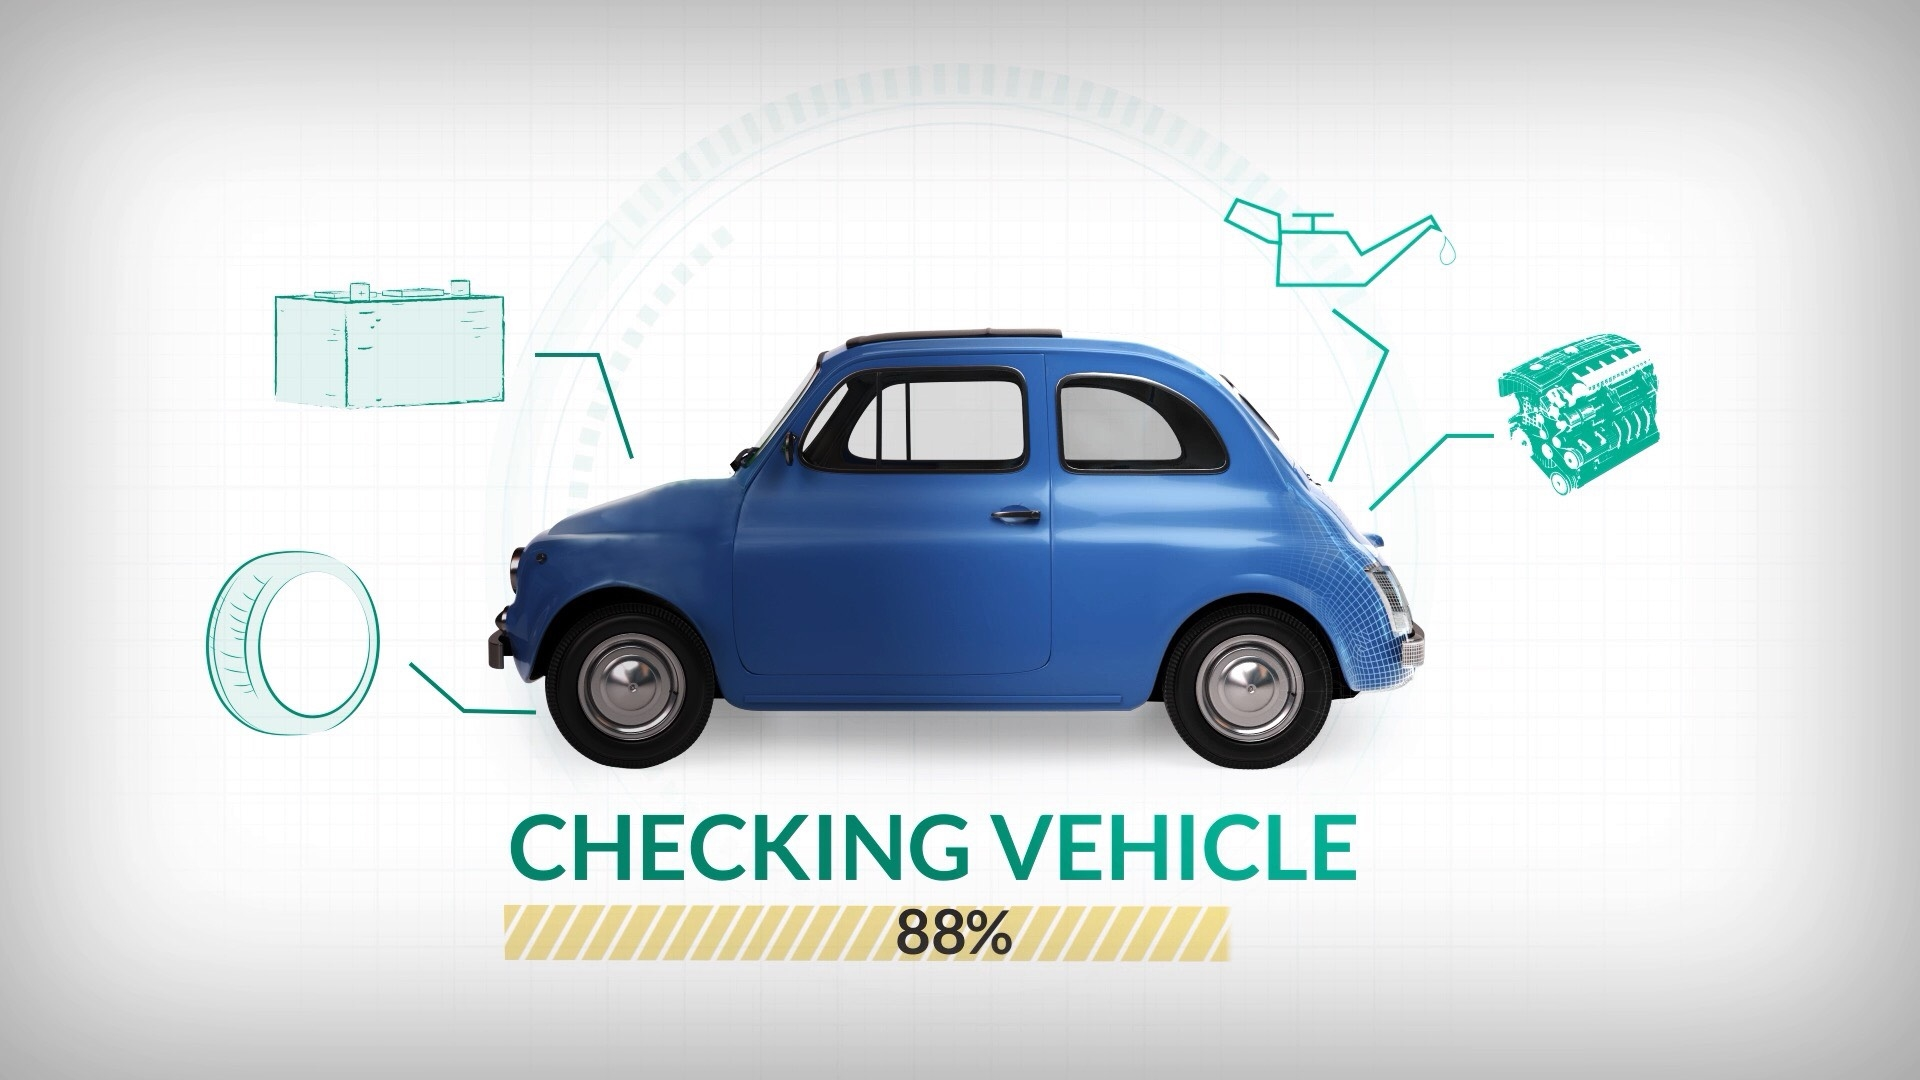 Car servicing is checked against manufacturer requirements